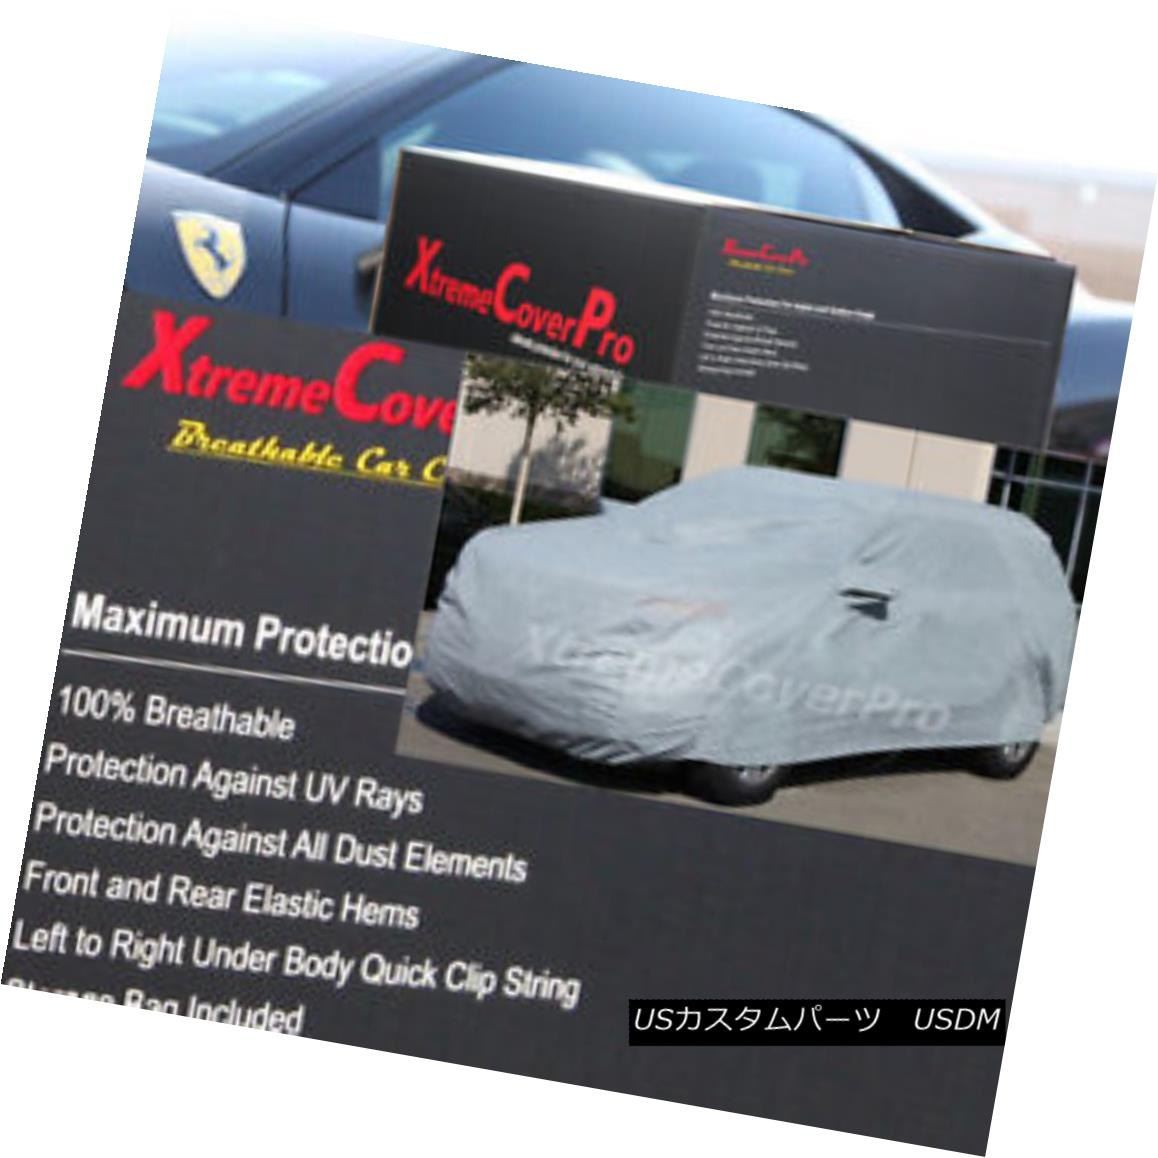 カーカバー 1999 2000 2001 Oldsmobile Bravada Breathable Car Cover w/MirrorPocket 1999 2000 2001 Oldsmobile Bravada通気性車カバー付き/ MirrorPocket